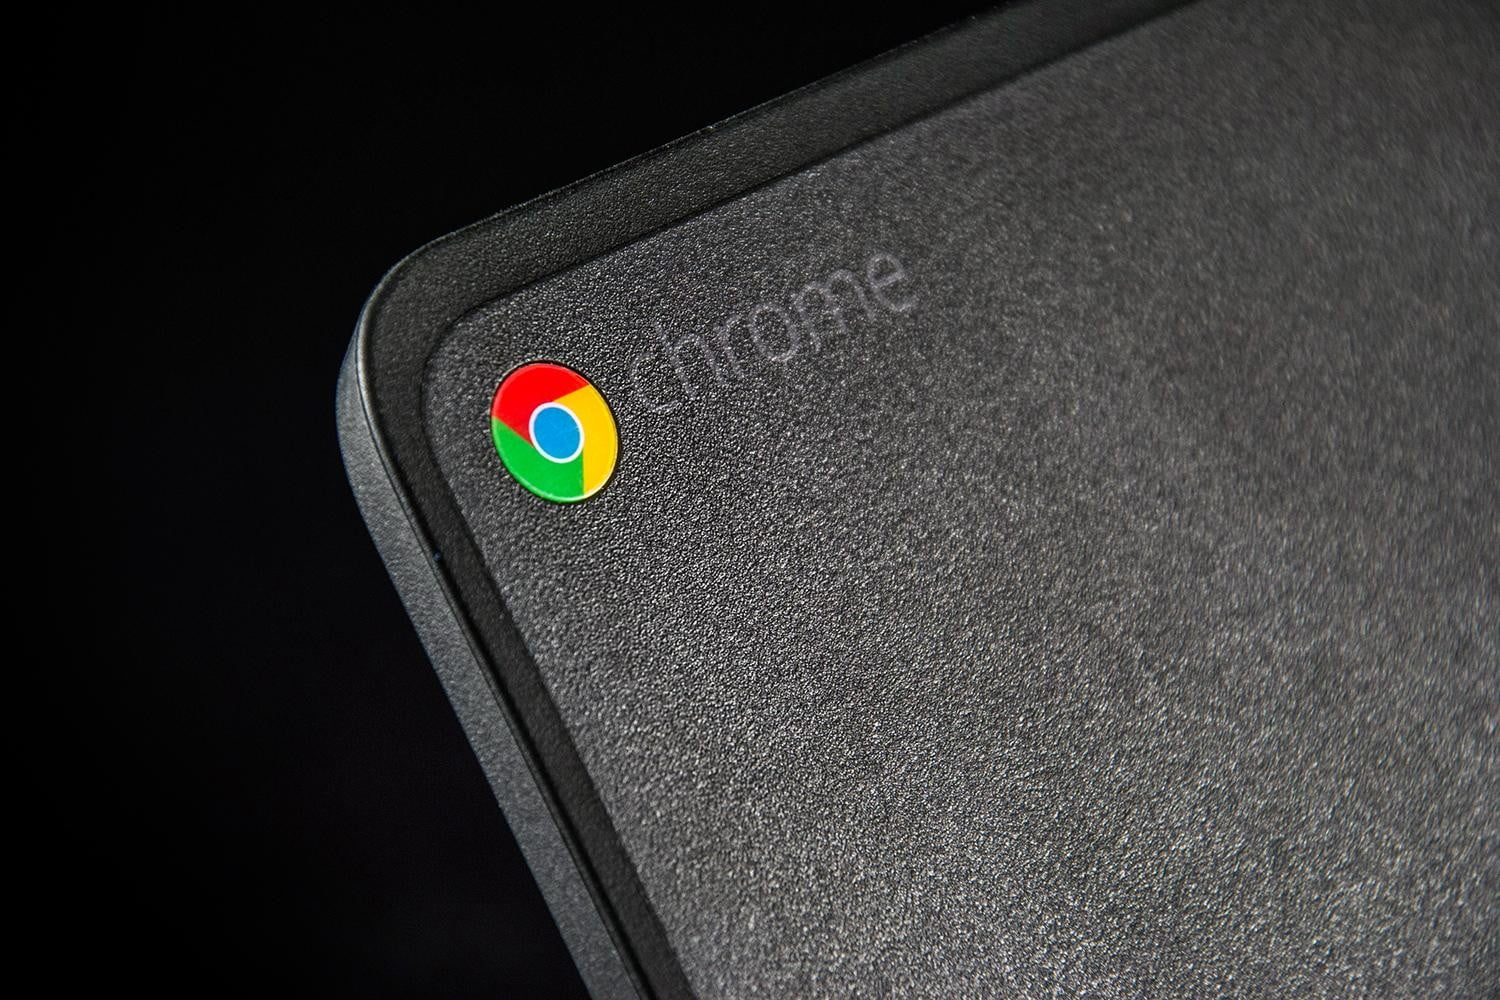 Discover your Chromebook's hidden features with these 5 tips